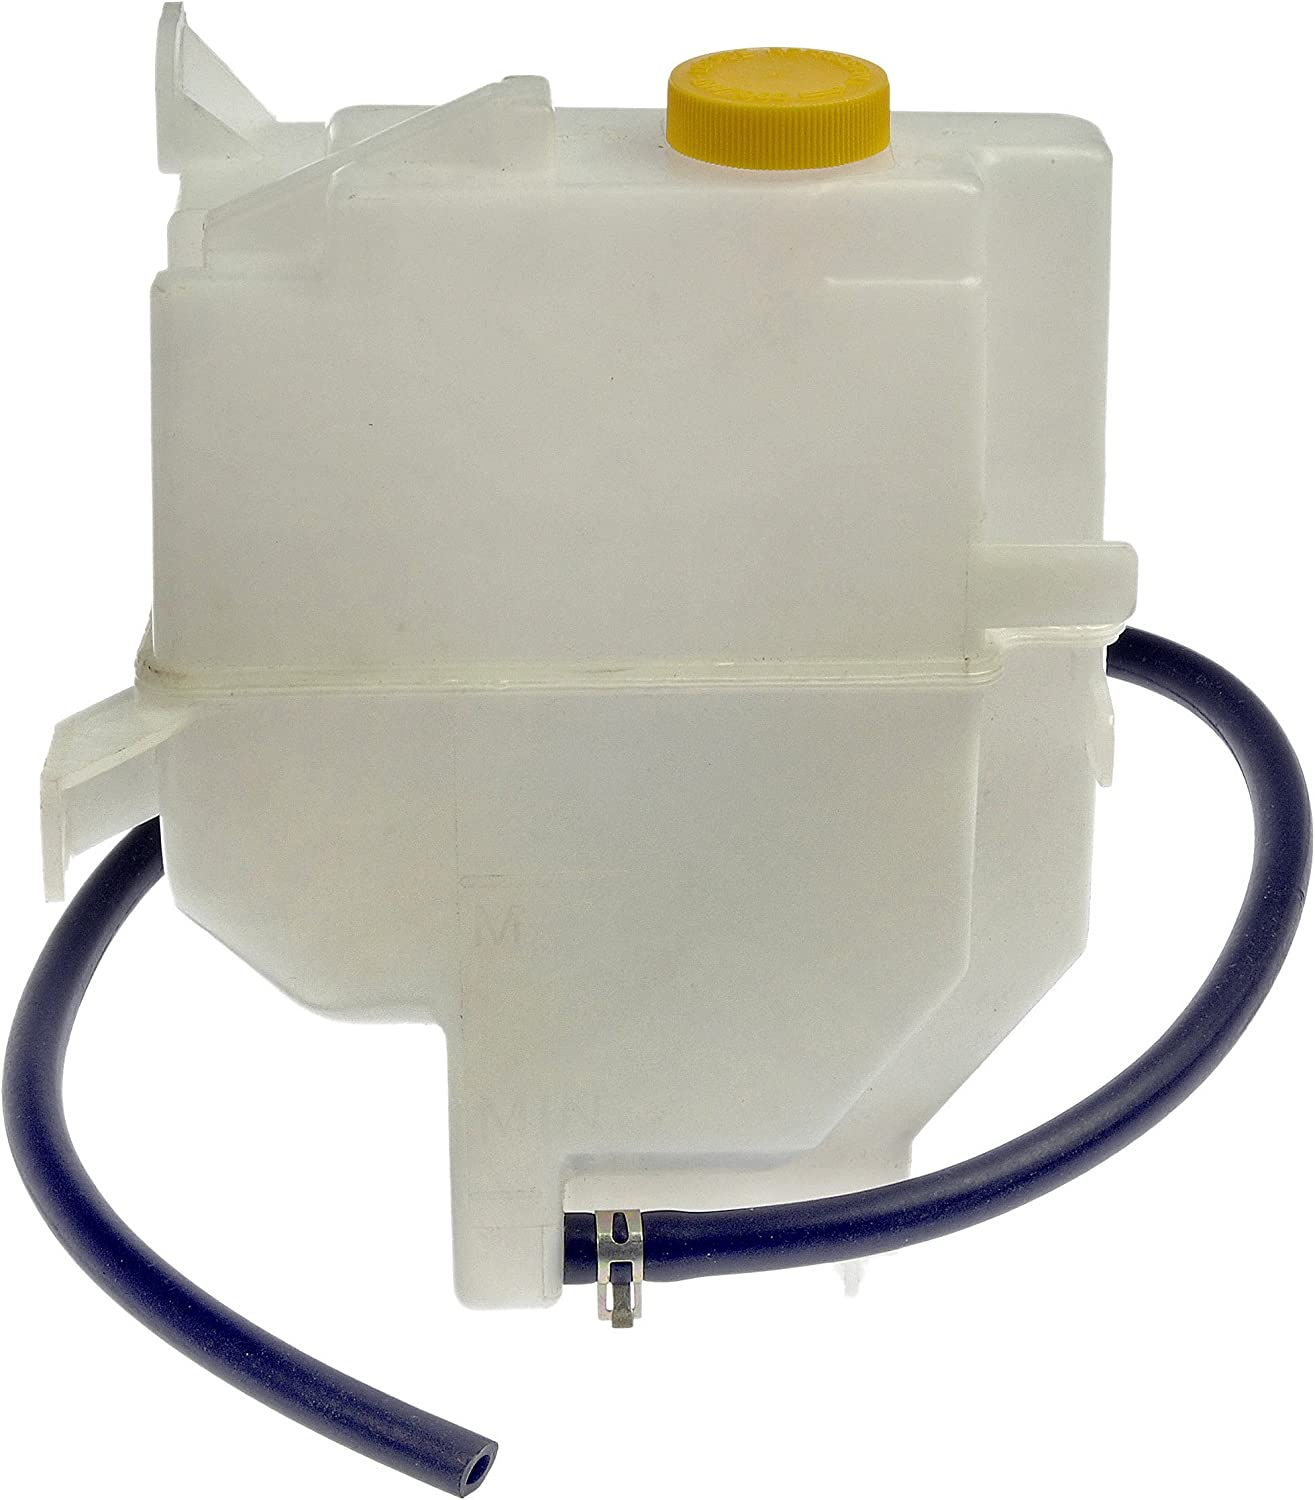 Factory Finish For Infiniti I35 02-04 Plastic Coolant Reservoir